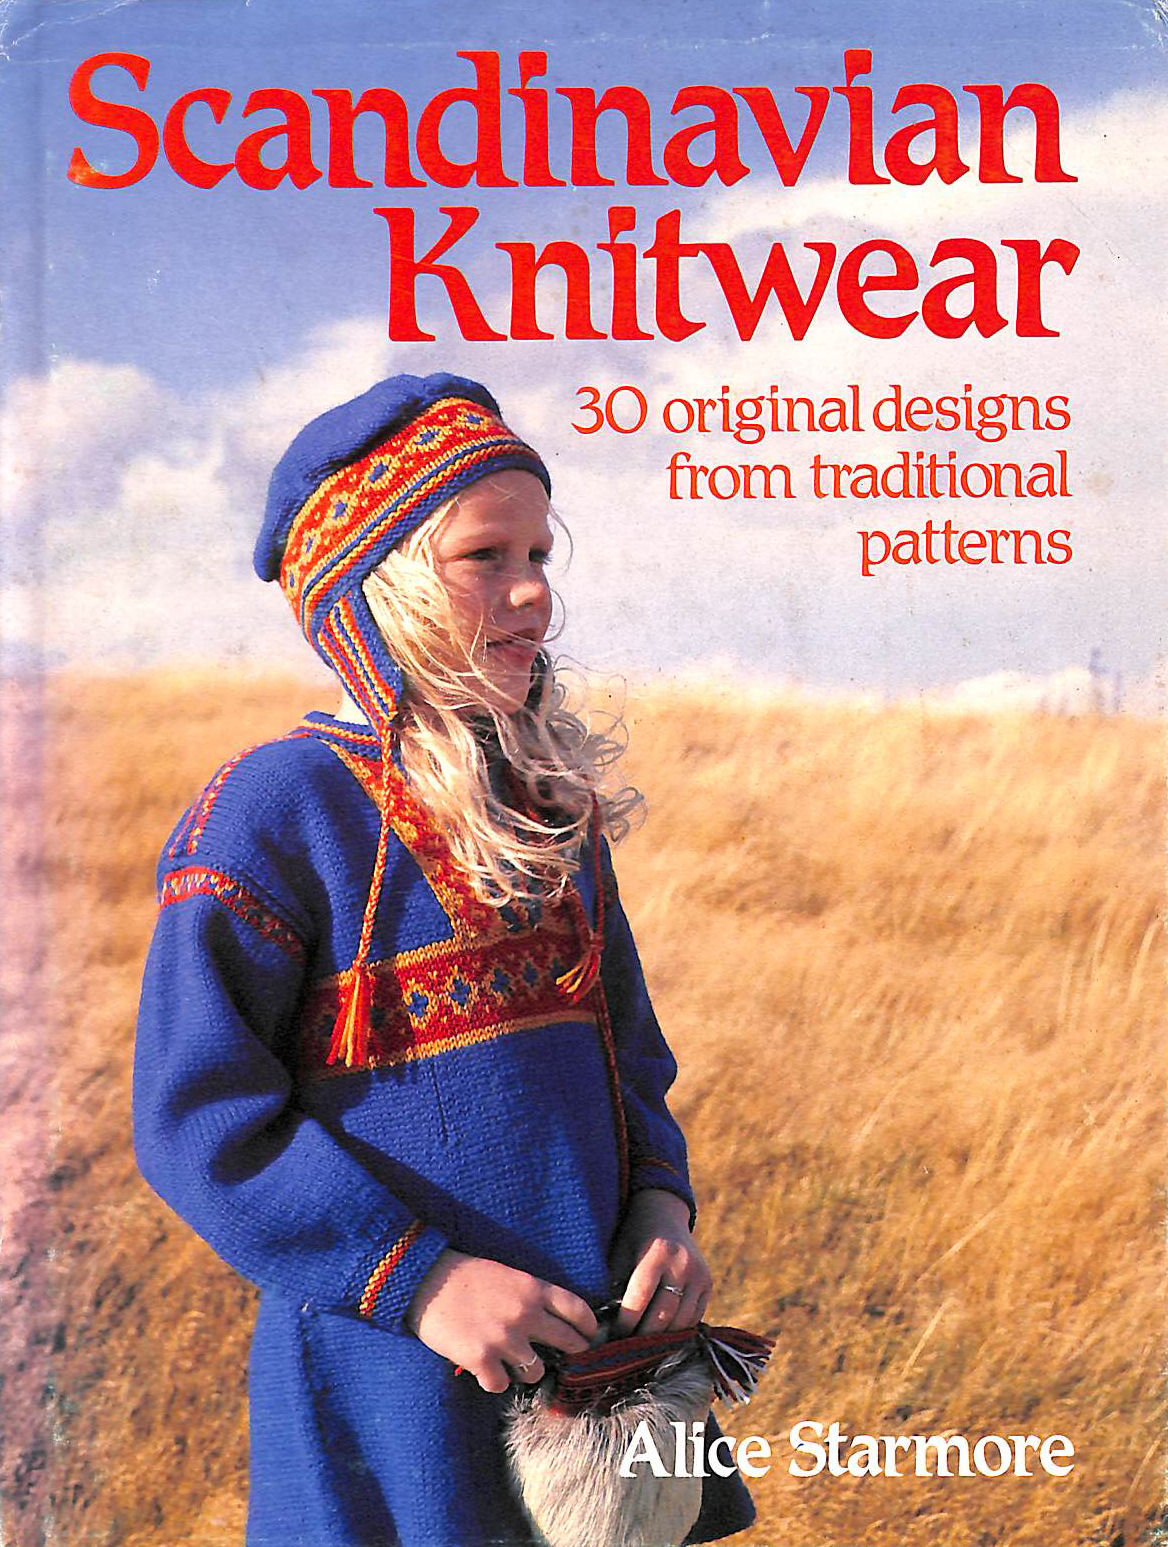 Image for Scandinavian Knitwear: 30 original designs from traditional patterns